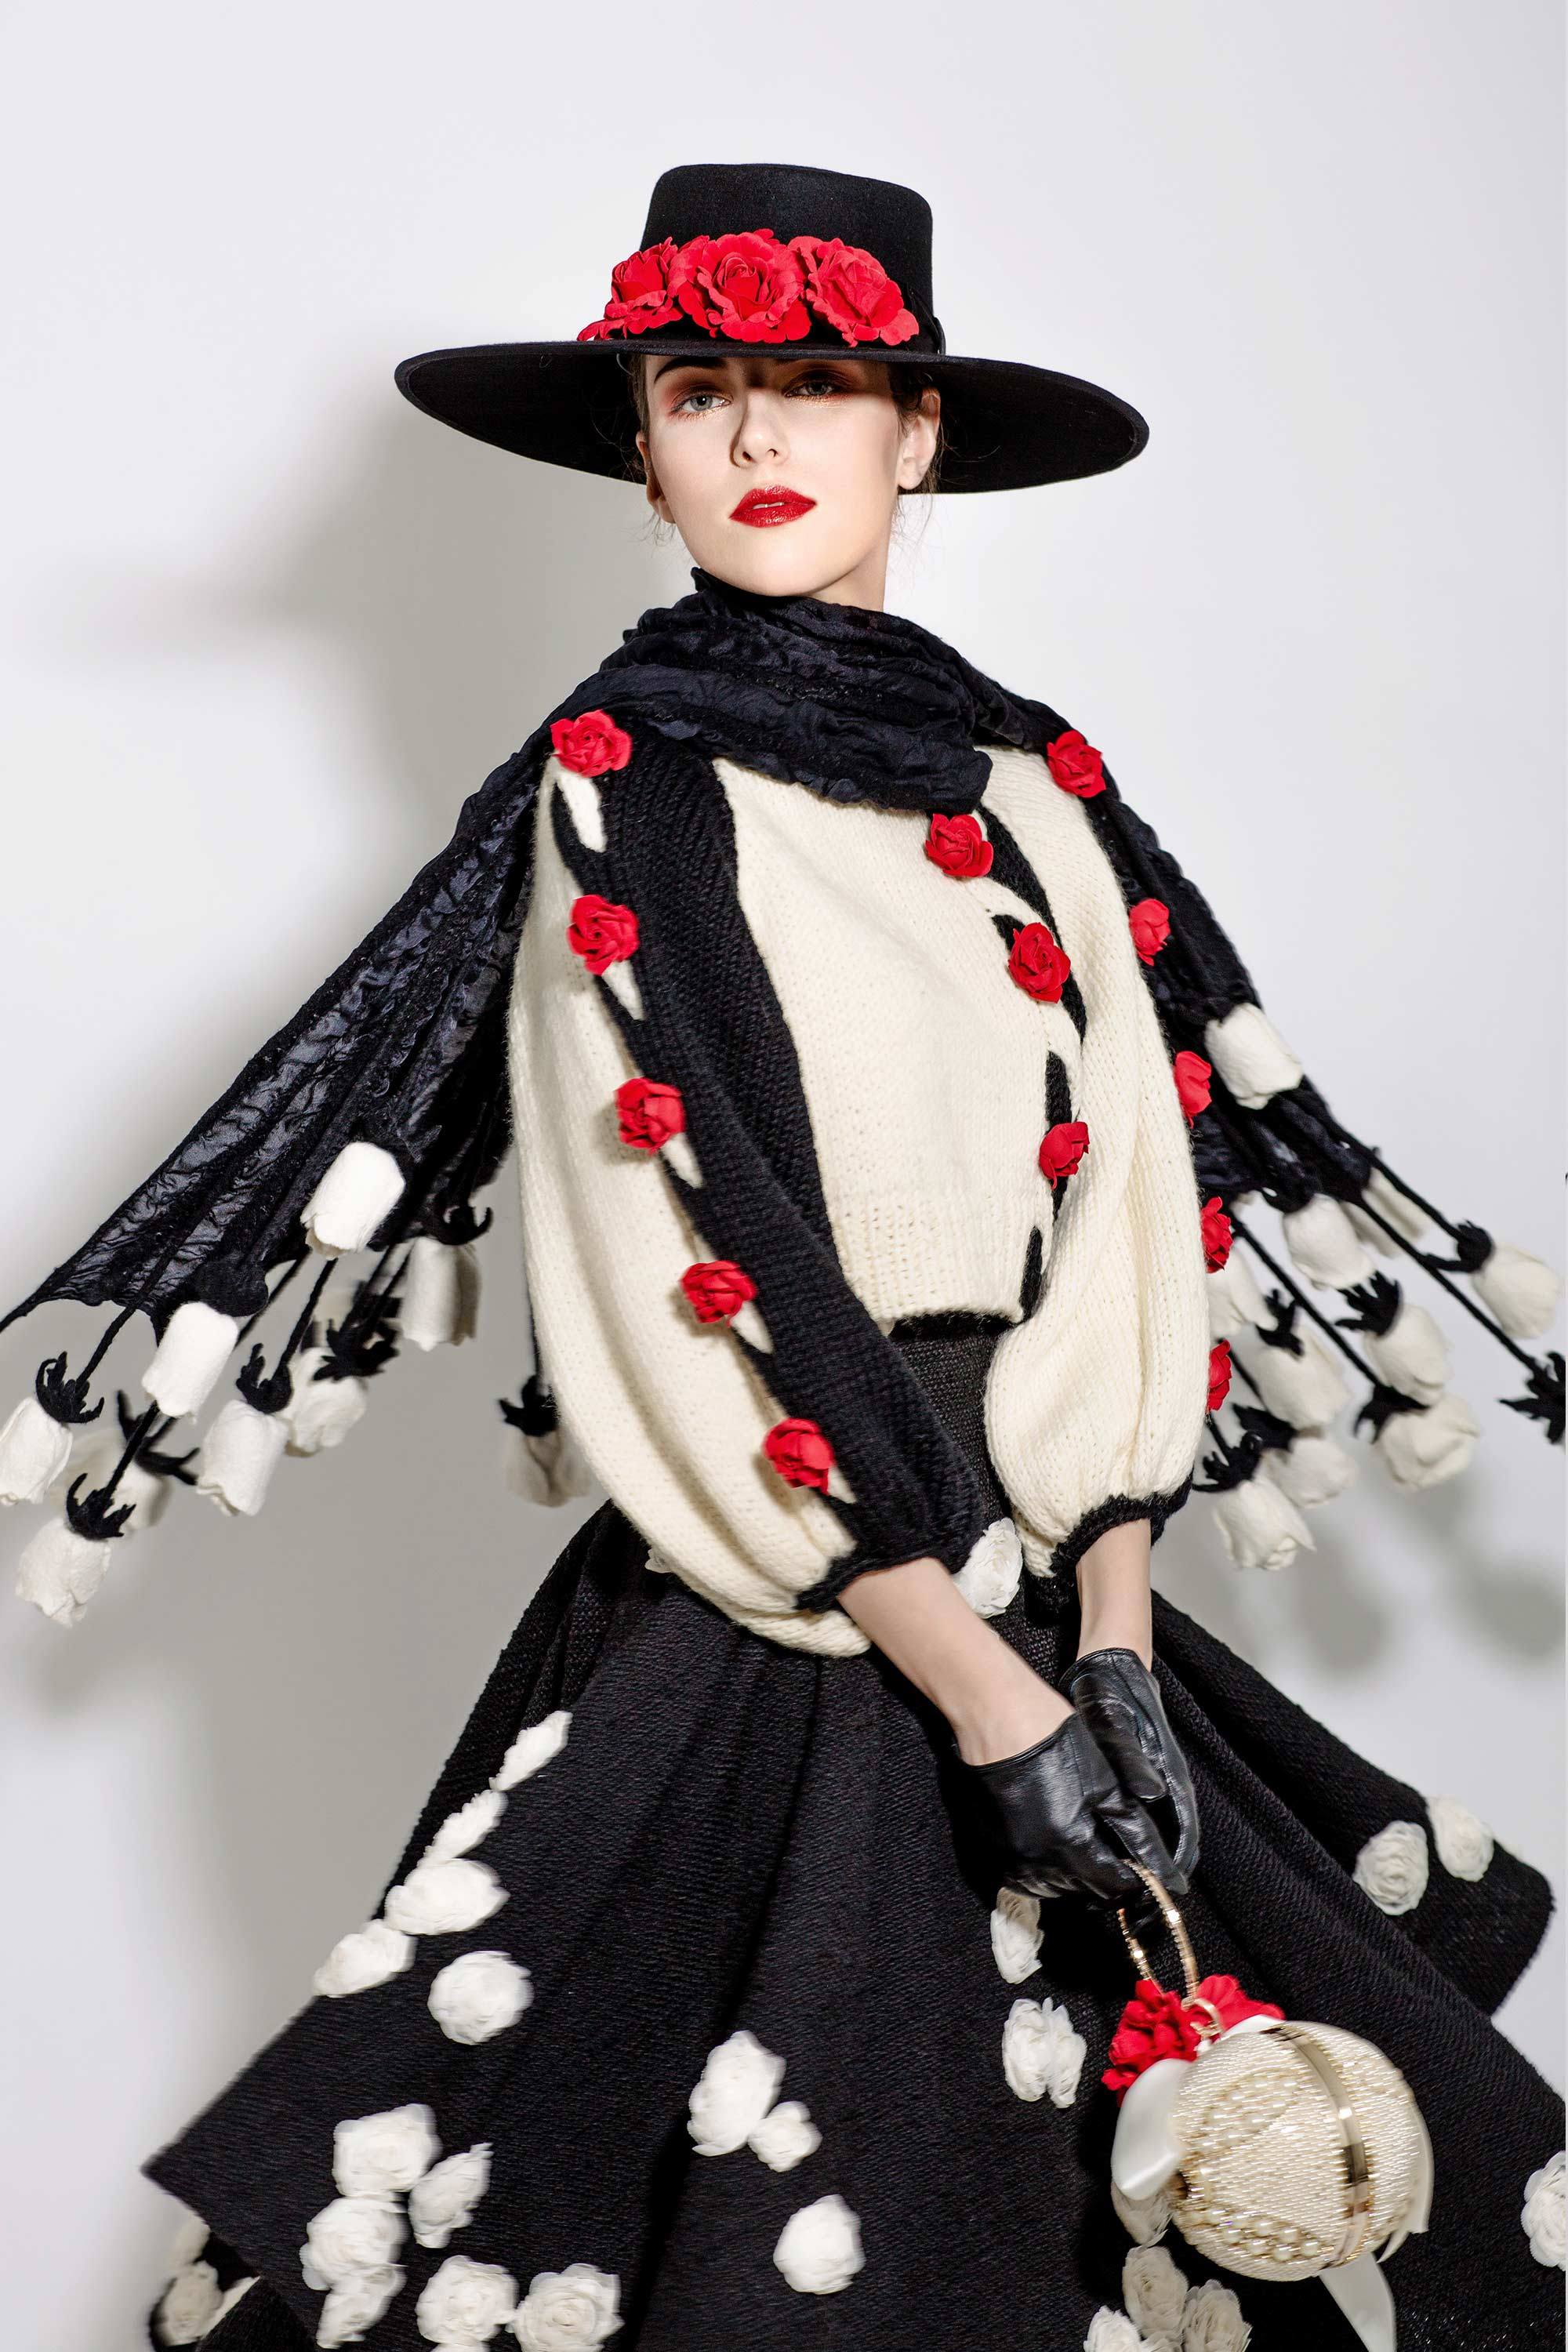 Wool Knitted Rose Braided Sweater with 3D Rosettes Embroidered Skirt and Felted Silk Rose Stole, Black/Cream/Red